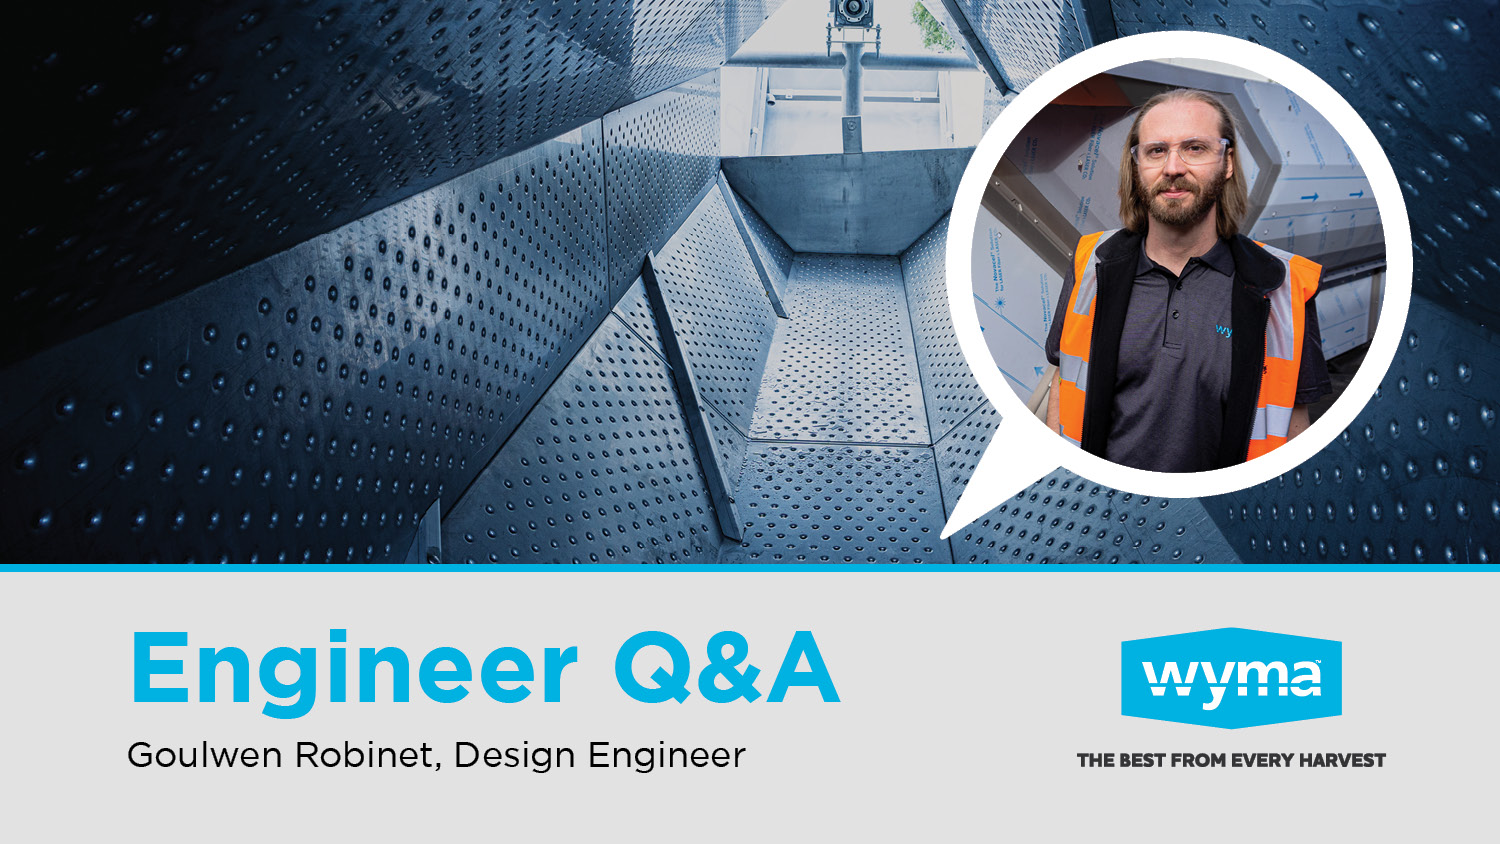 Engineer Q&A: Stainless steel or mild steel for post-harvest construction?